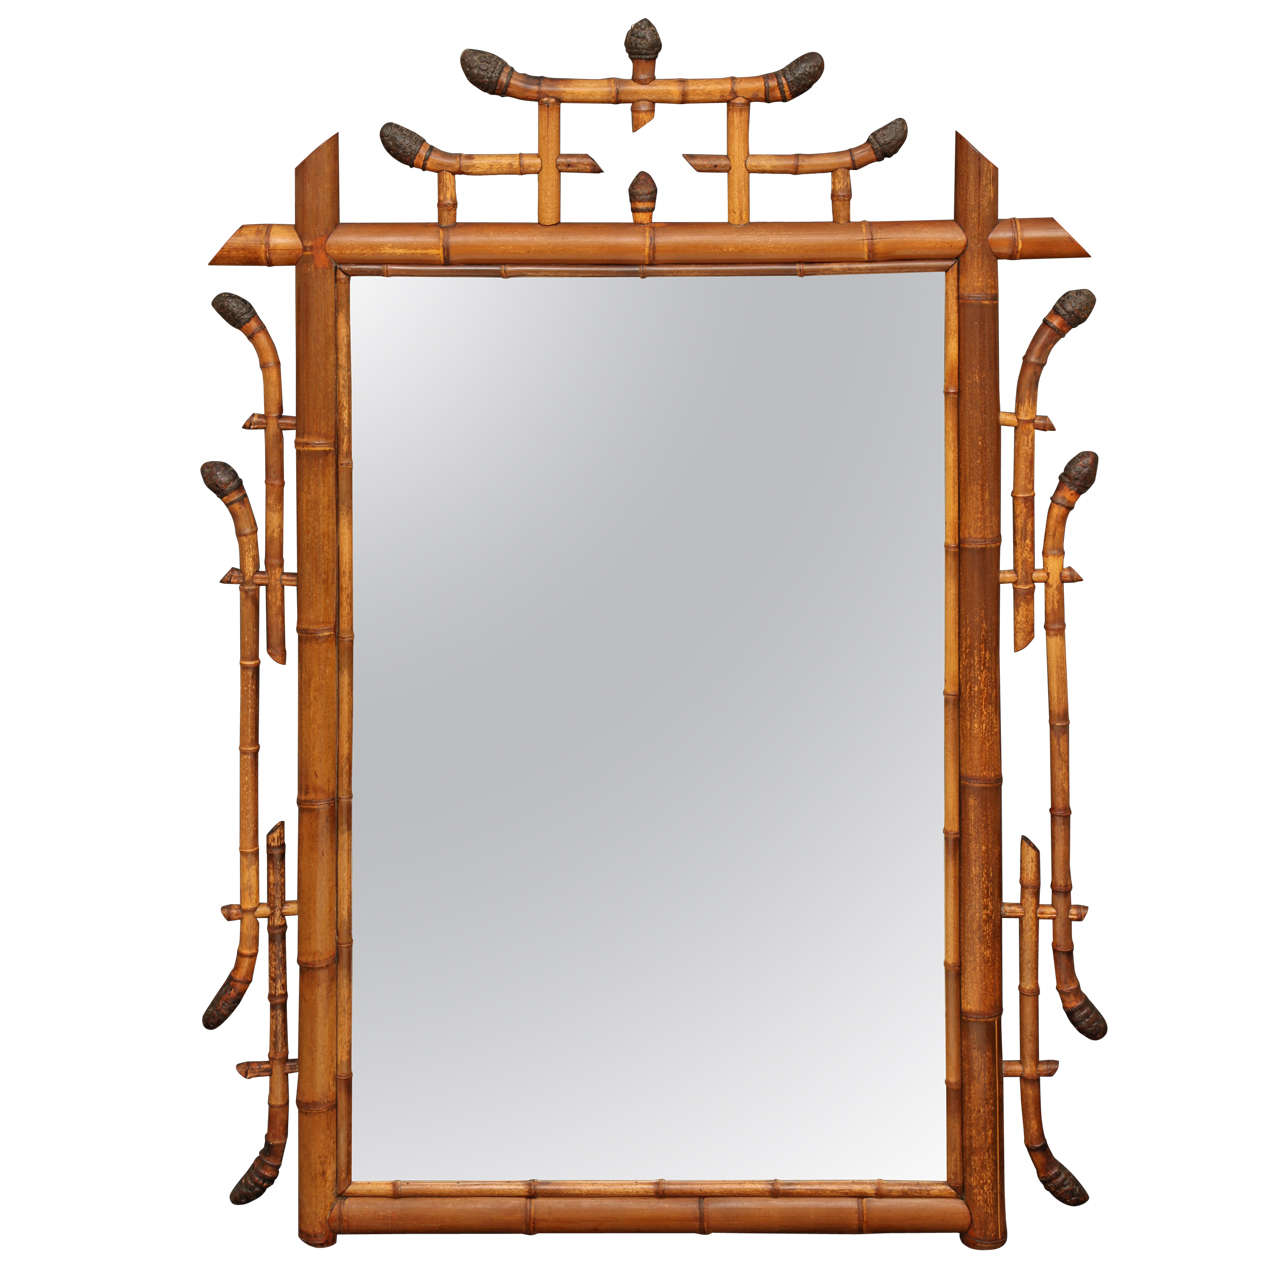 Large bamboo framed mirror at 1stdibs for Large framed mirrors